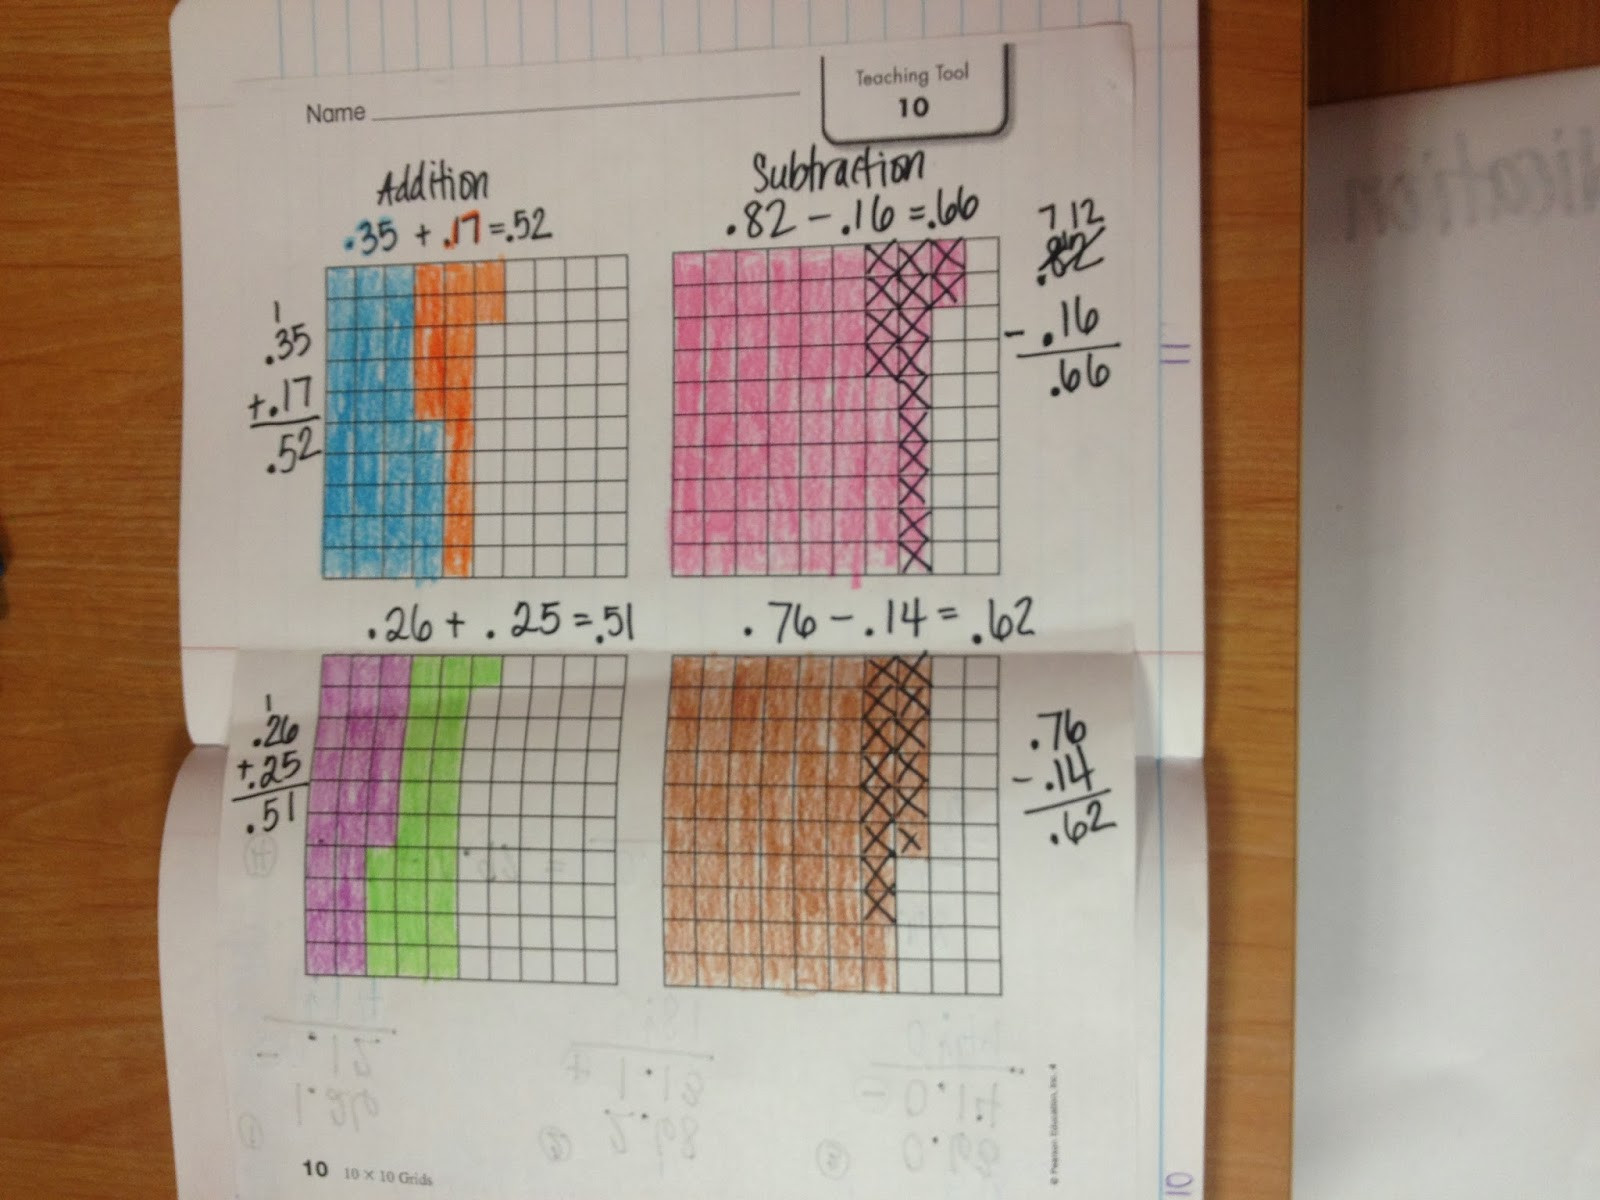 subtracting fractions with borrowing worksheets